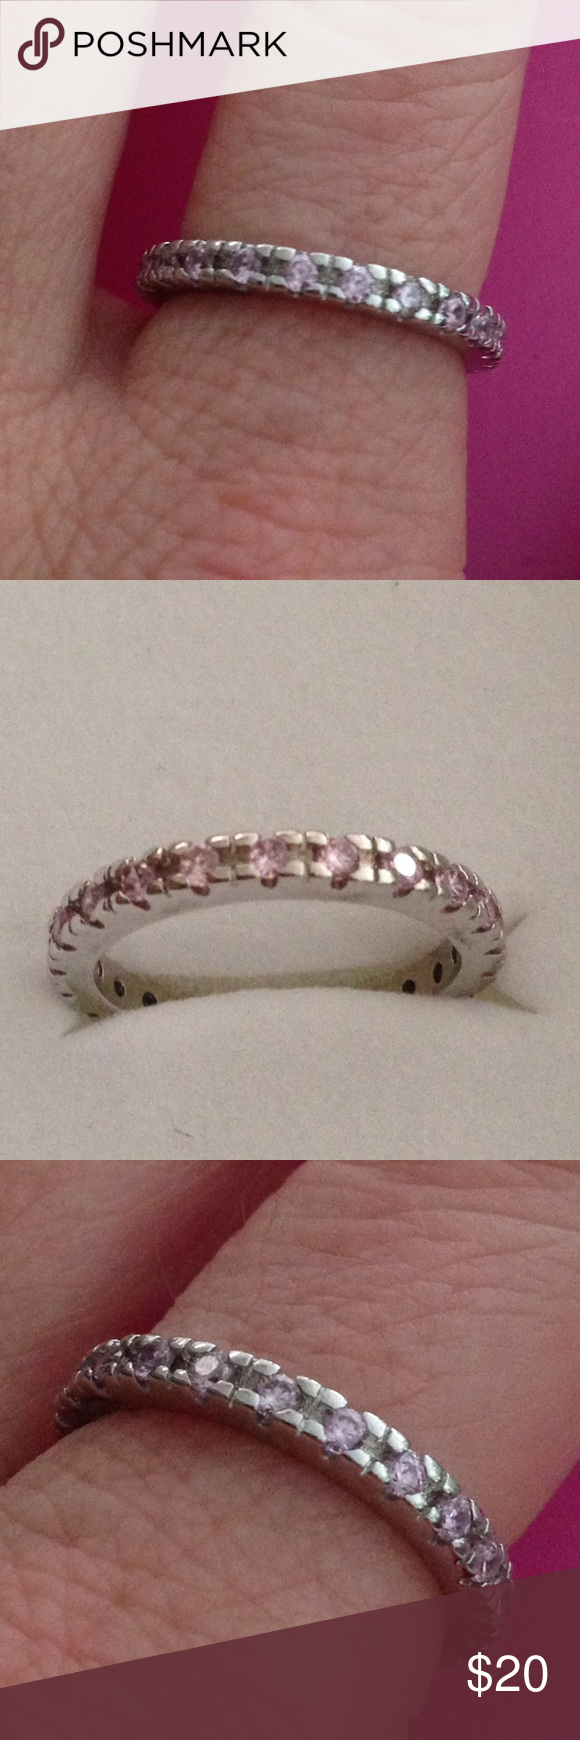 💯% 925 Sterling Silver Kunzite sz 8 stacking ring Beautiful band with 💯% Kunzite gem stones, light pink, set in an 💯% 925 Sterling silver setting, great to wear alone or stacking. NWOT 💞🎀 Jewelry Rings